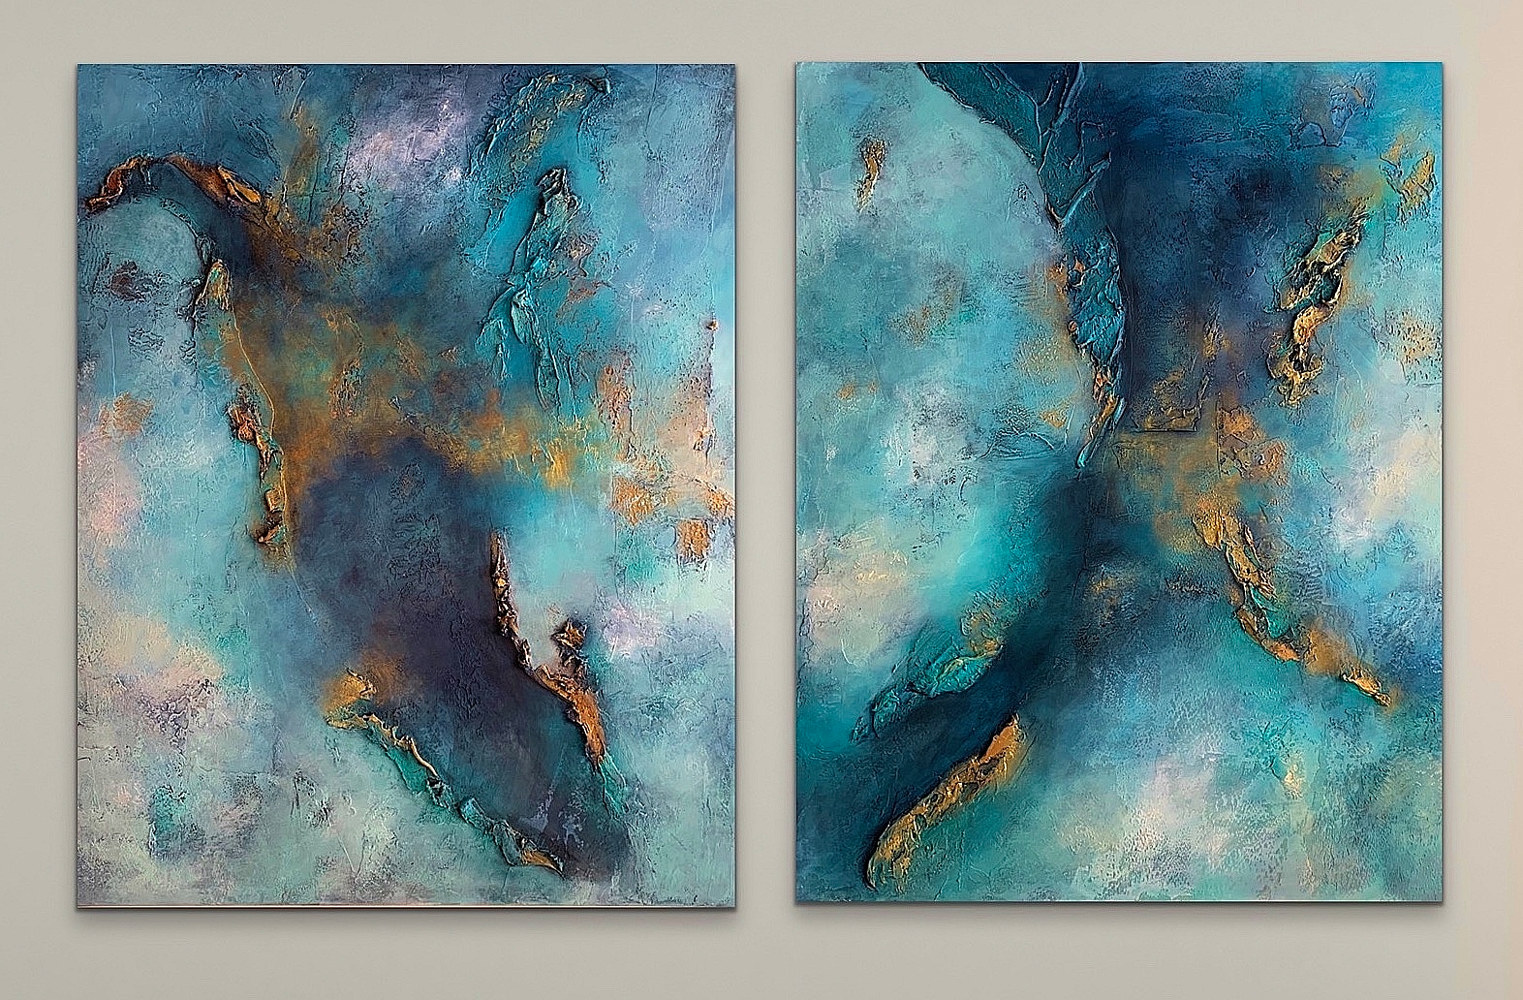 Angels in Disguise I & II by Ginger Thomas